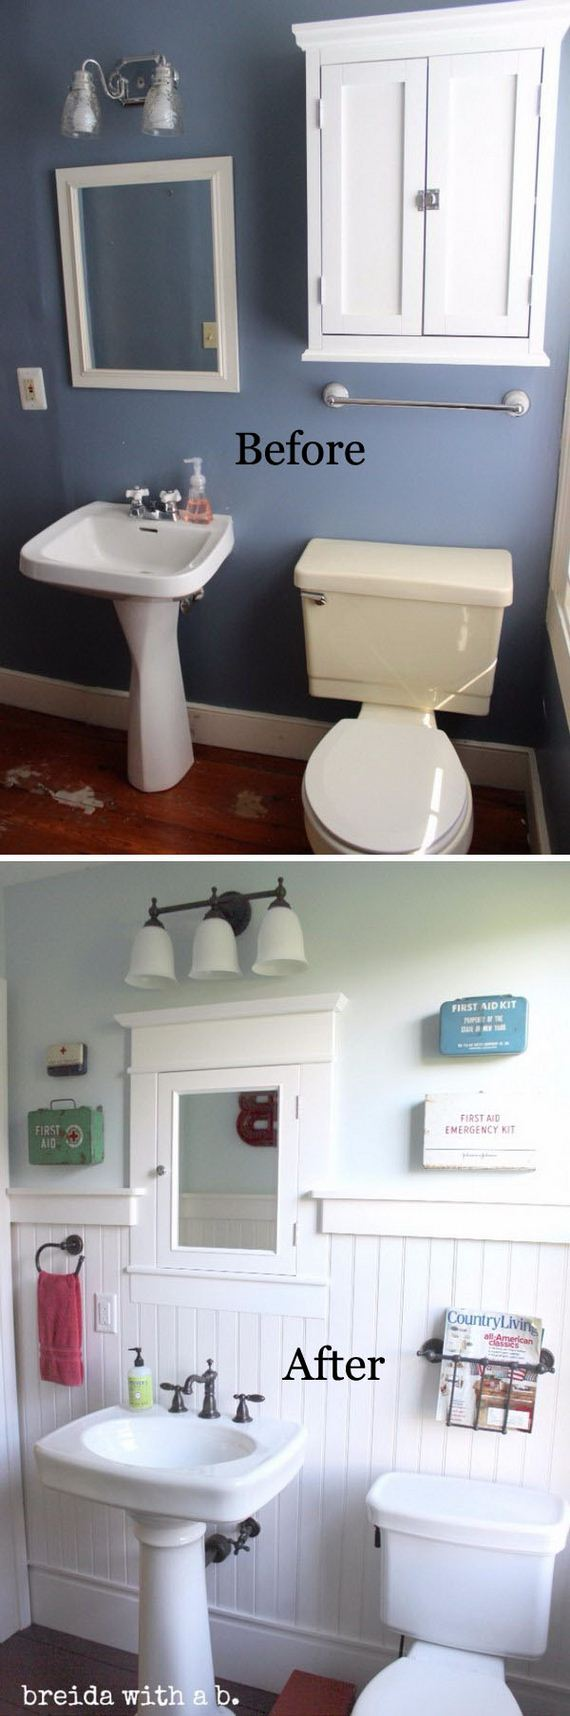 24-awesome-bathroom-makeovers